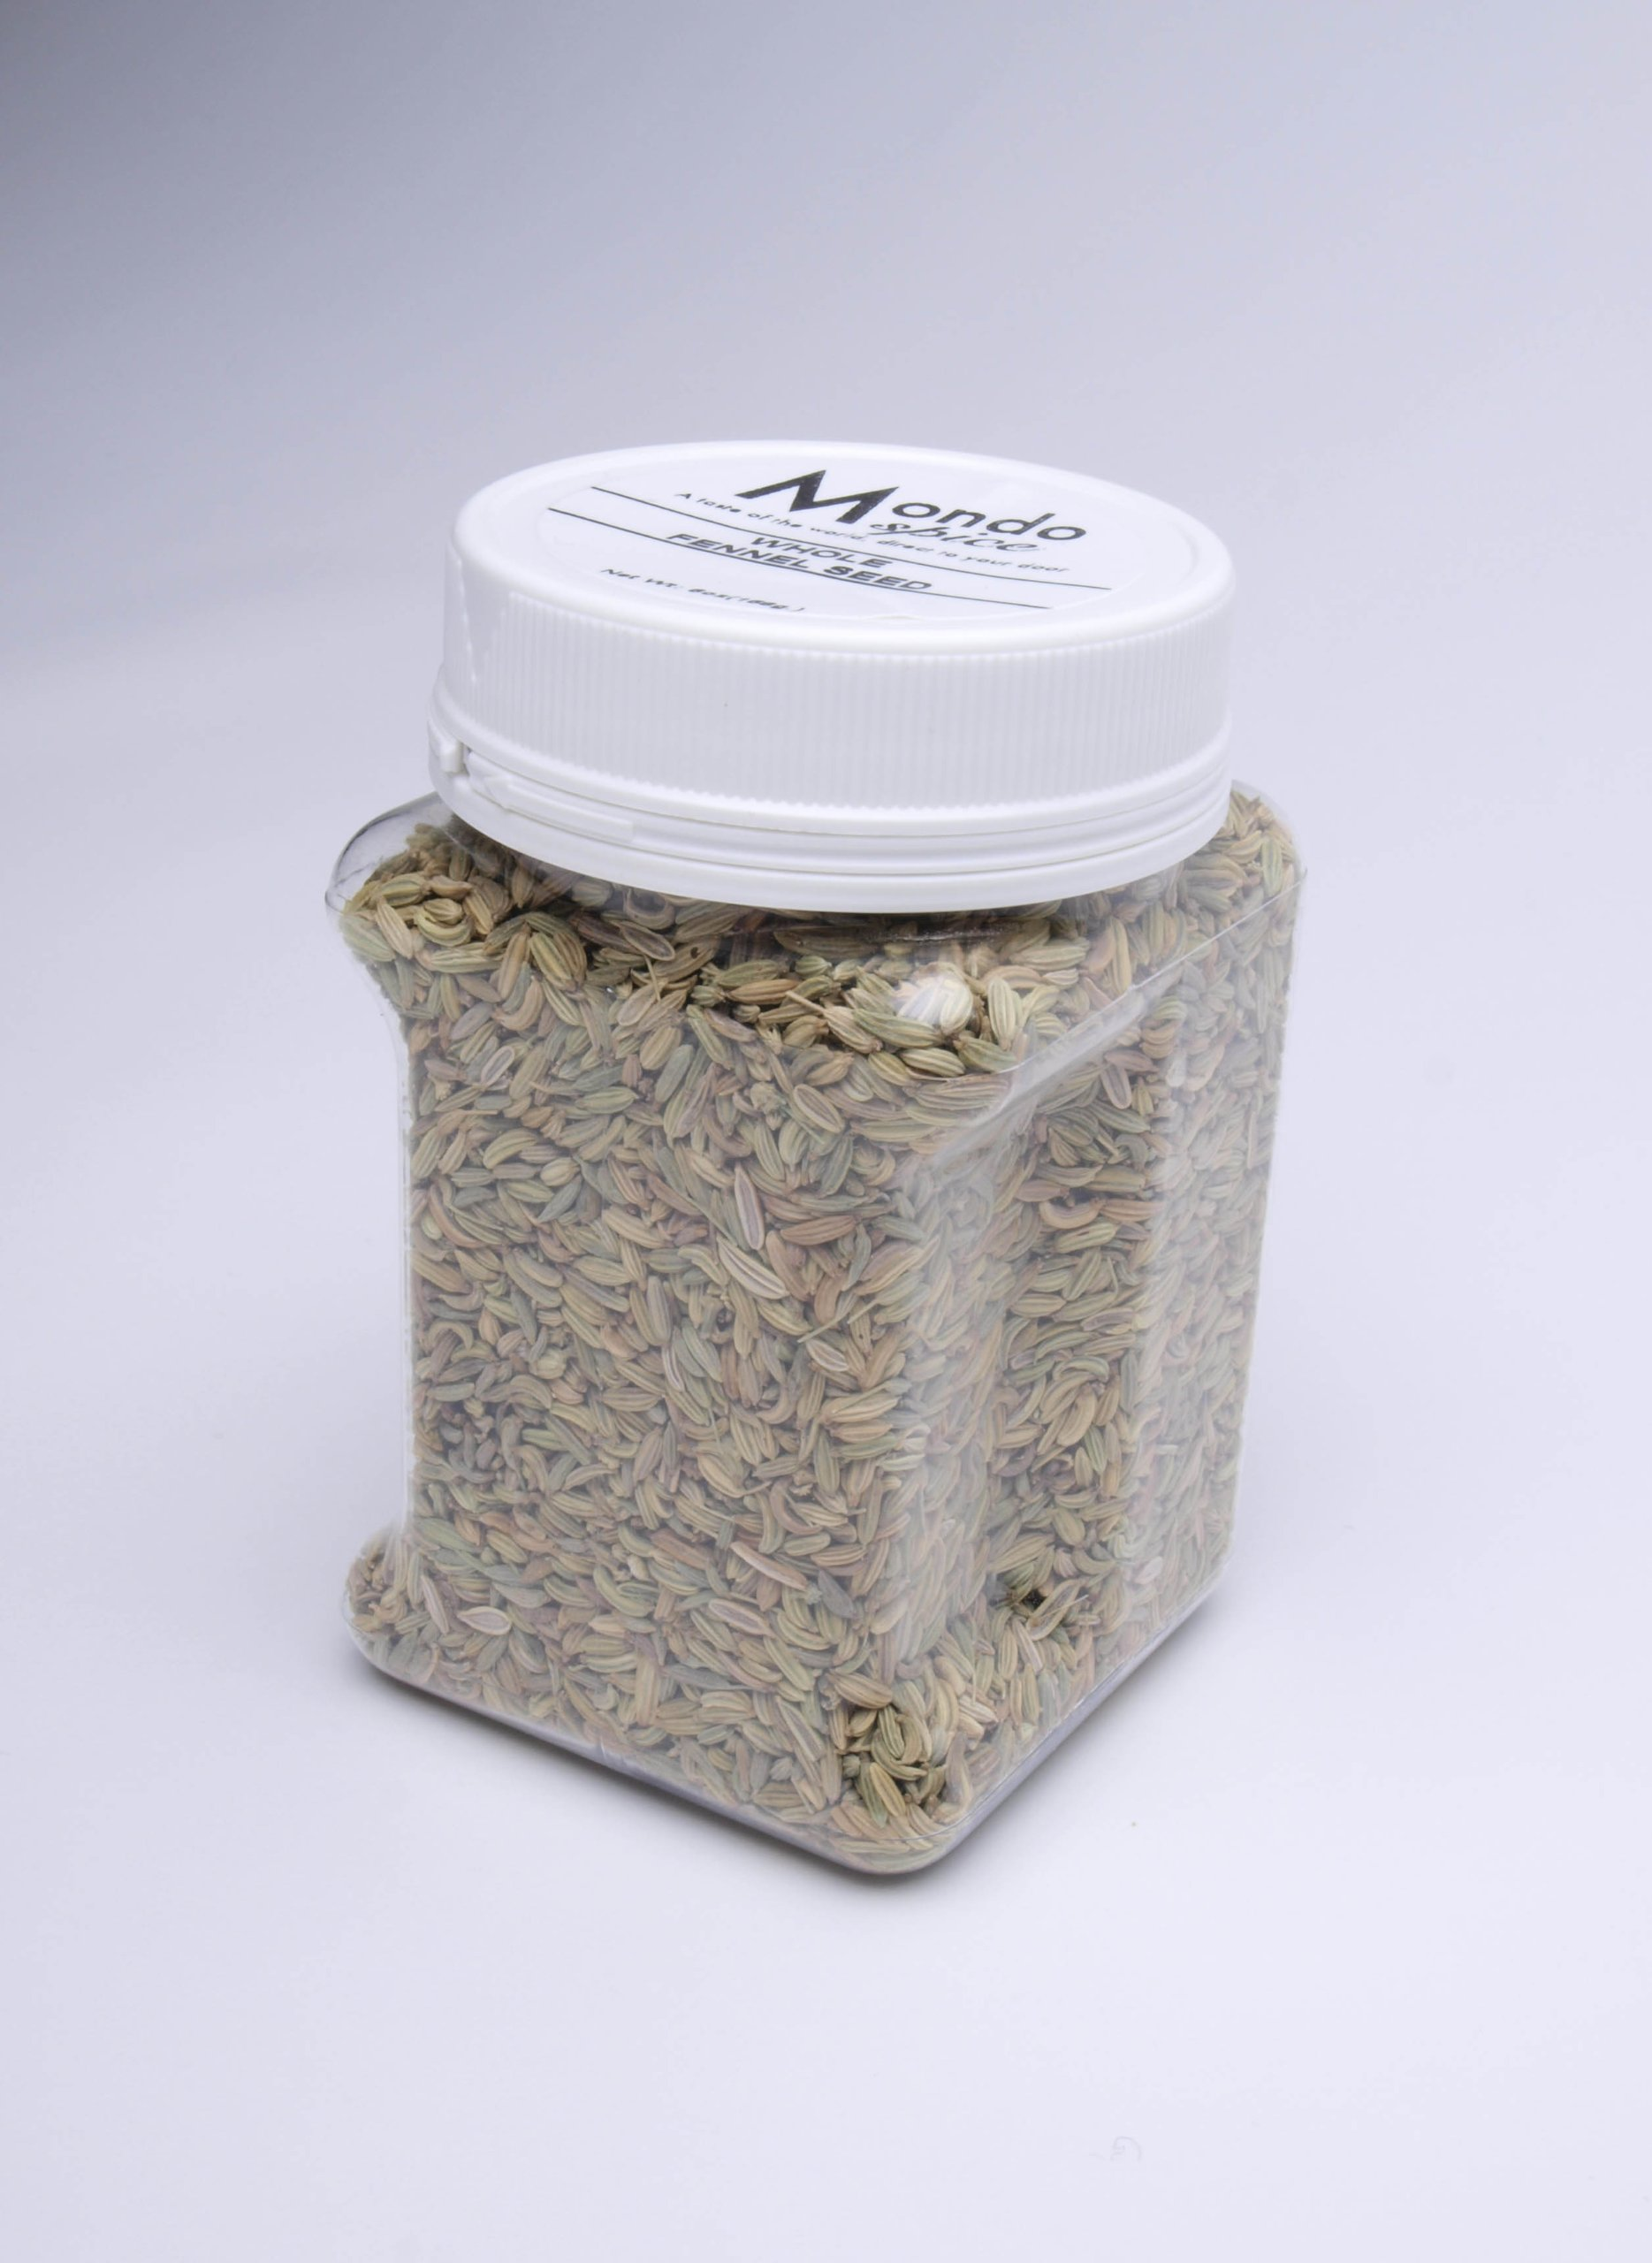 Fennel Seed - 6 Ounce by Mondo Food (Image #1)